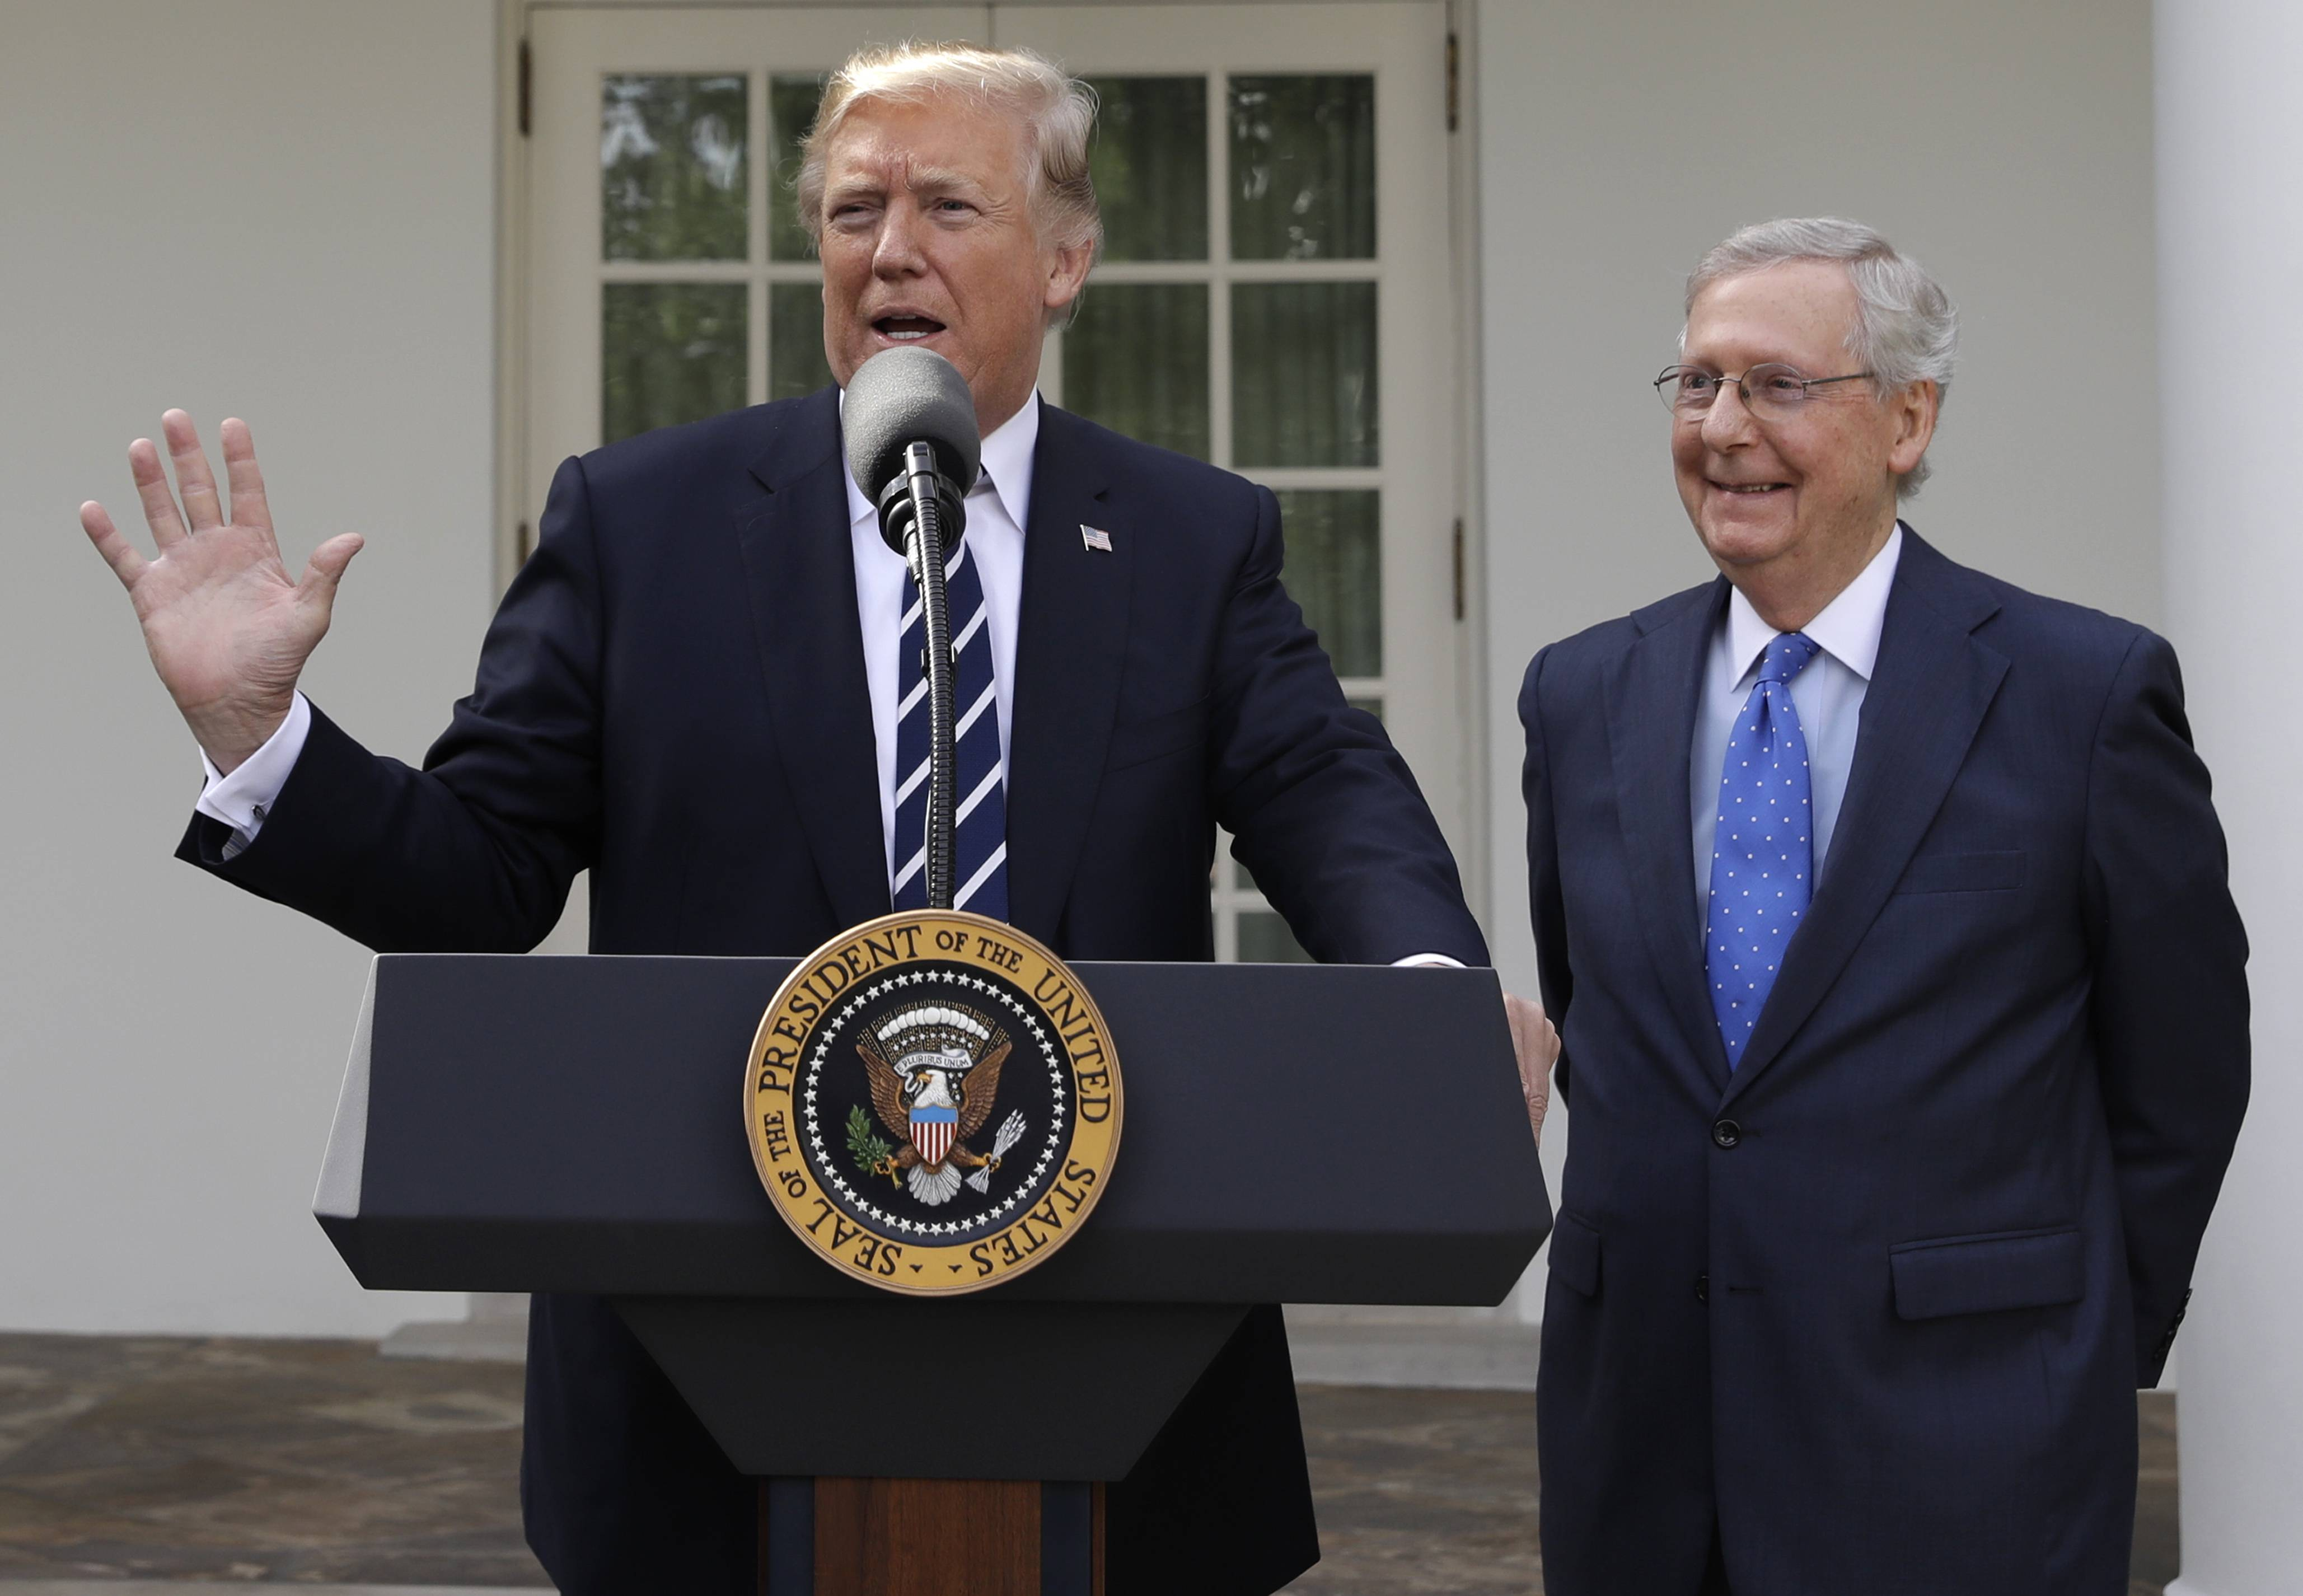 President Donald Trump answers questions with Senate Majority Leader Mitch McConnell, R-Ky., in the Rose Garden after their meeting at the White House, Monday, Oct. 16, 2017, in Washington.